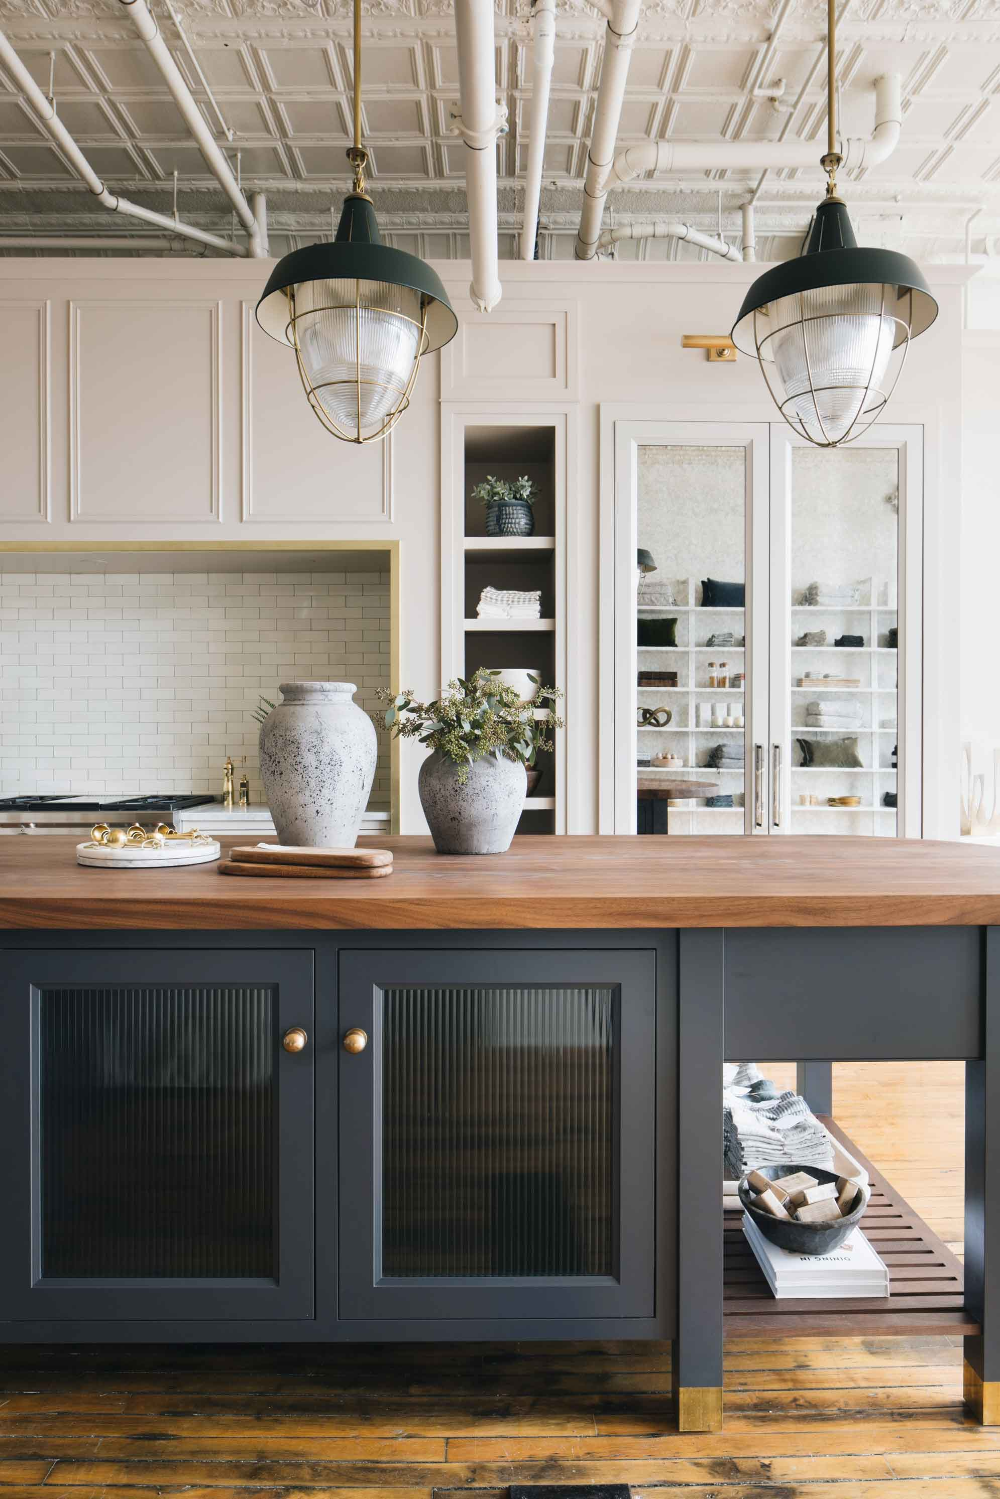 Stories Evolving A Design Business Over Time With Jean Stoffer Kitchen Design Home Kitchens Home